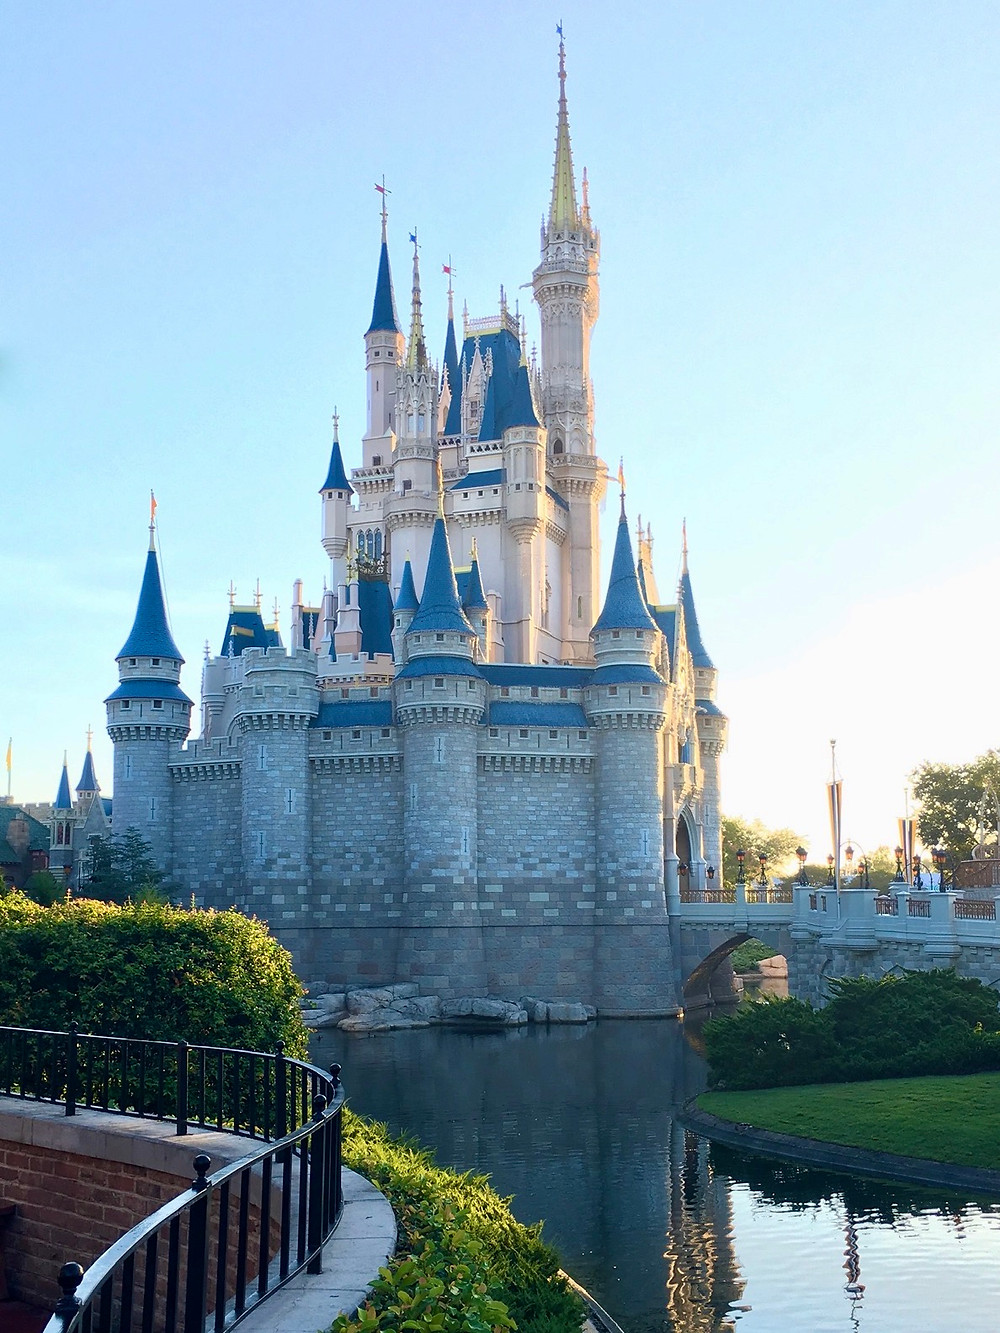 Magic Kingdom Castle at Disney World